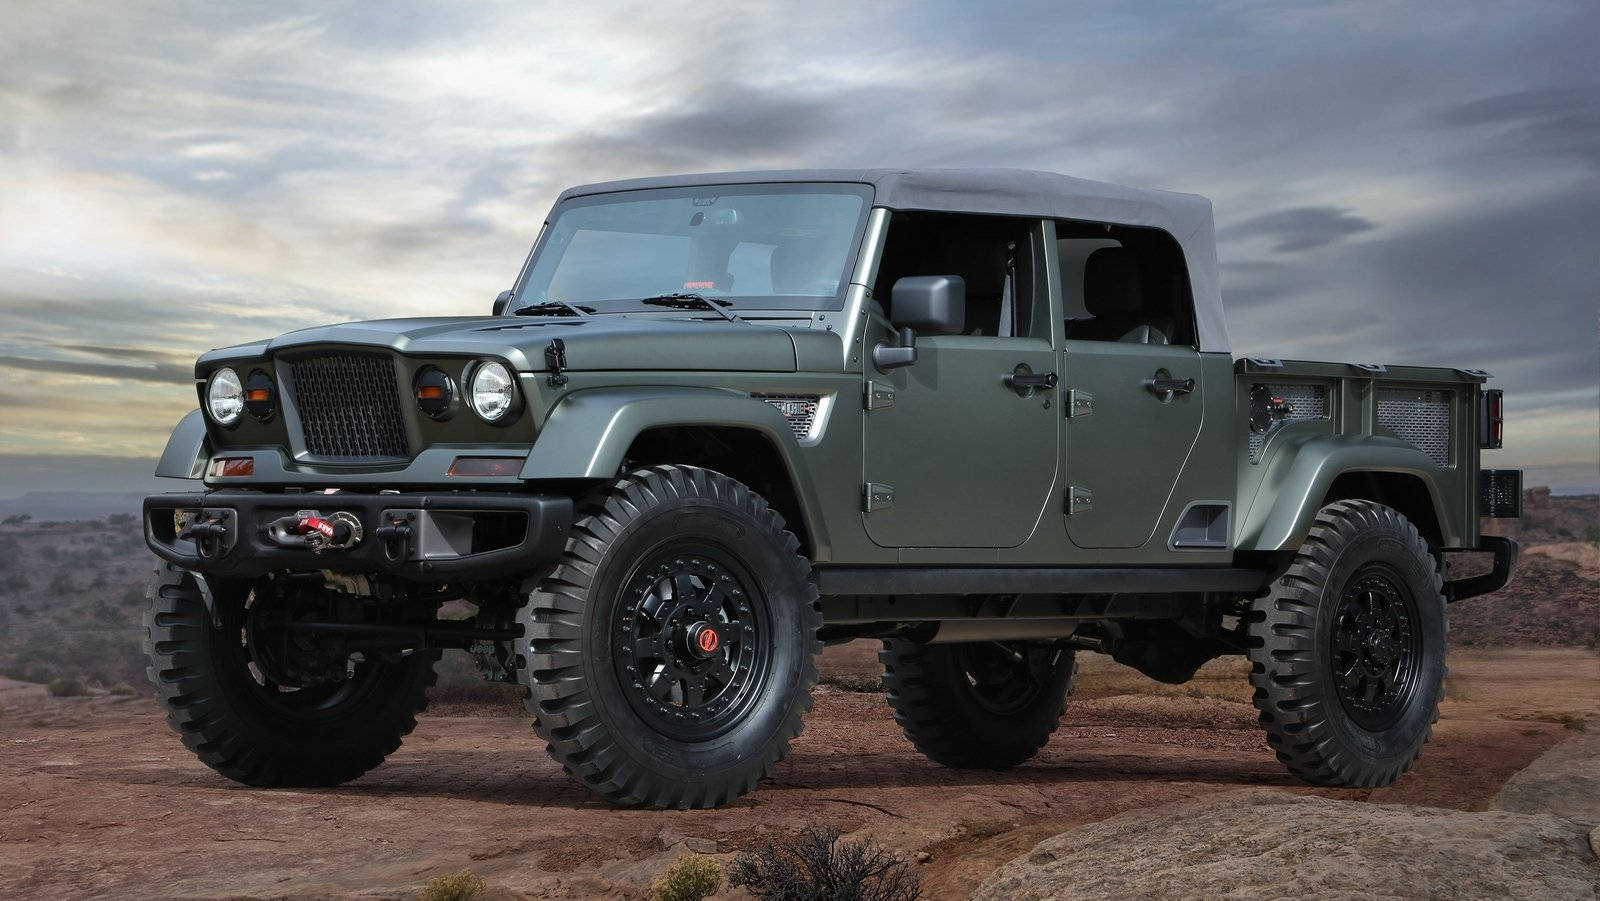 Jeep Ute Wagoneer And Grand Wagoneer Suvs To Be Funded By